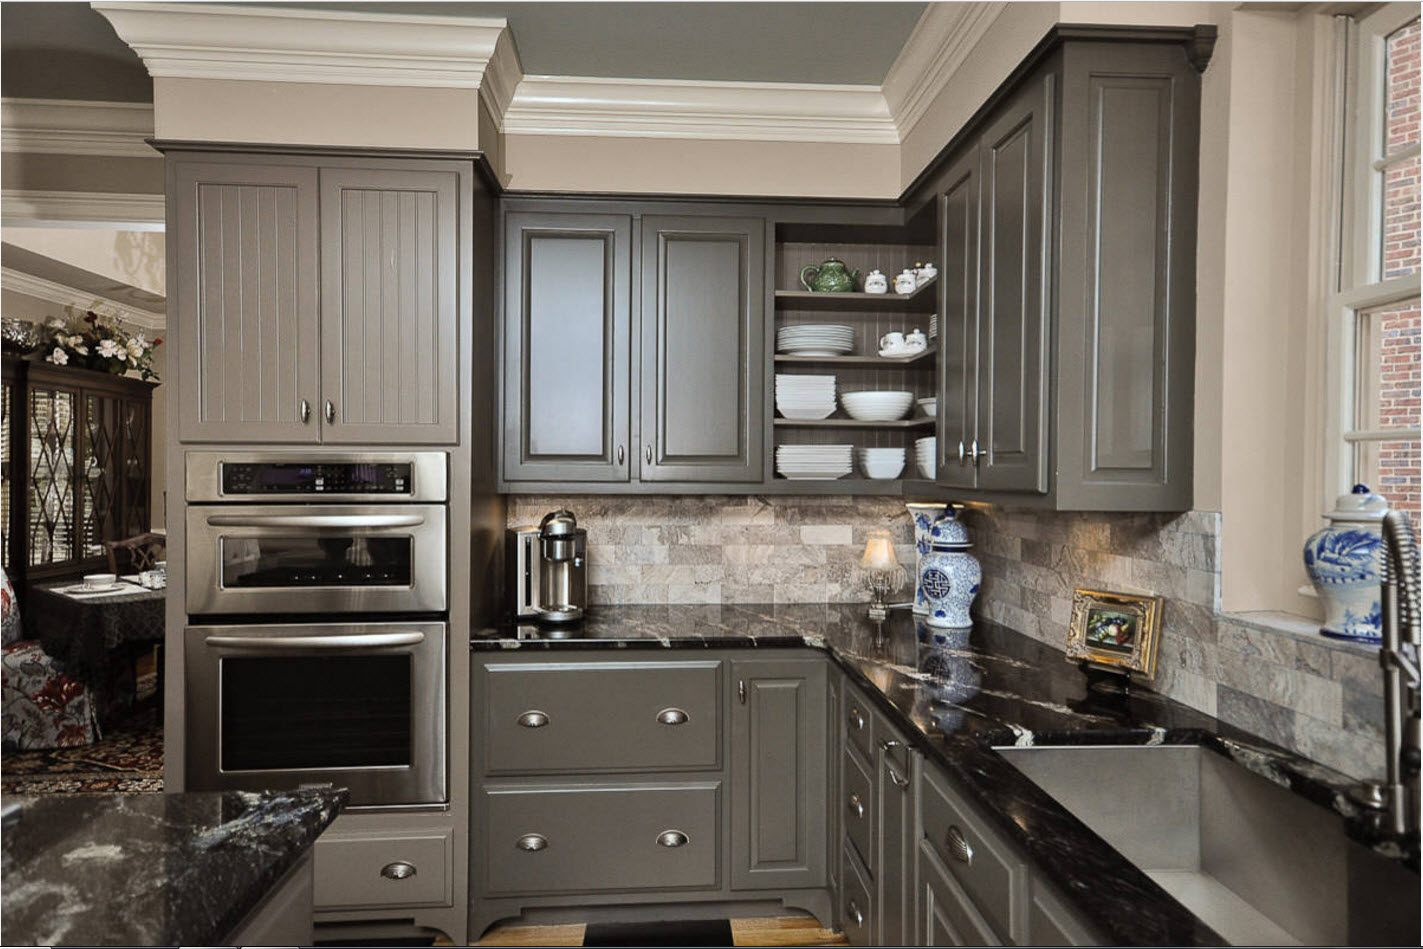 The angular design of the kitchen: the pros and cons 56